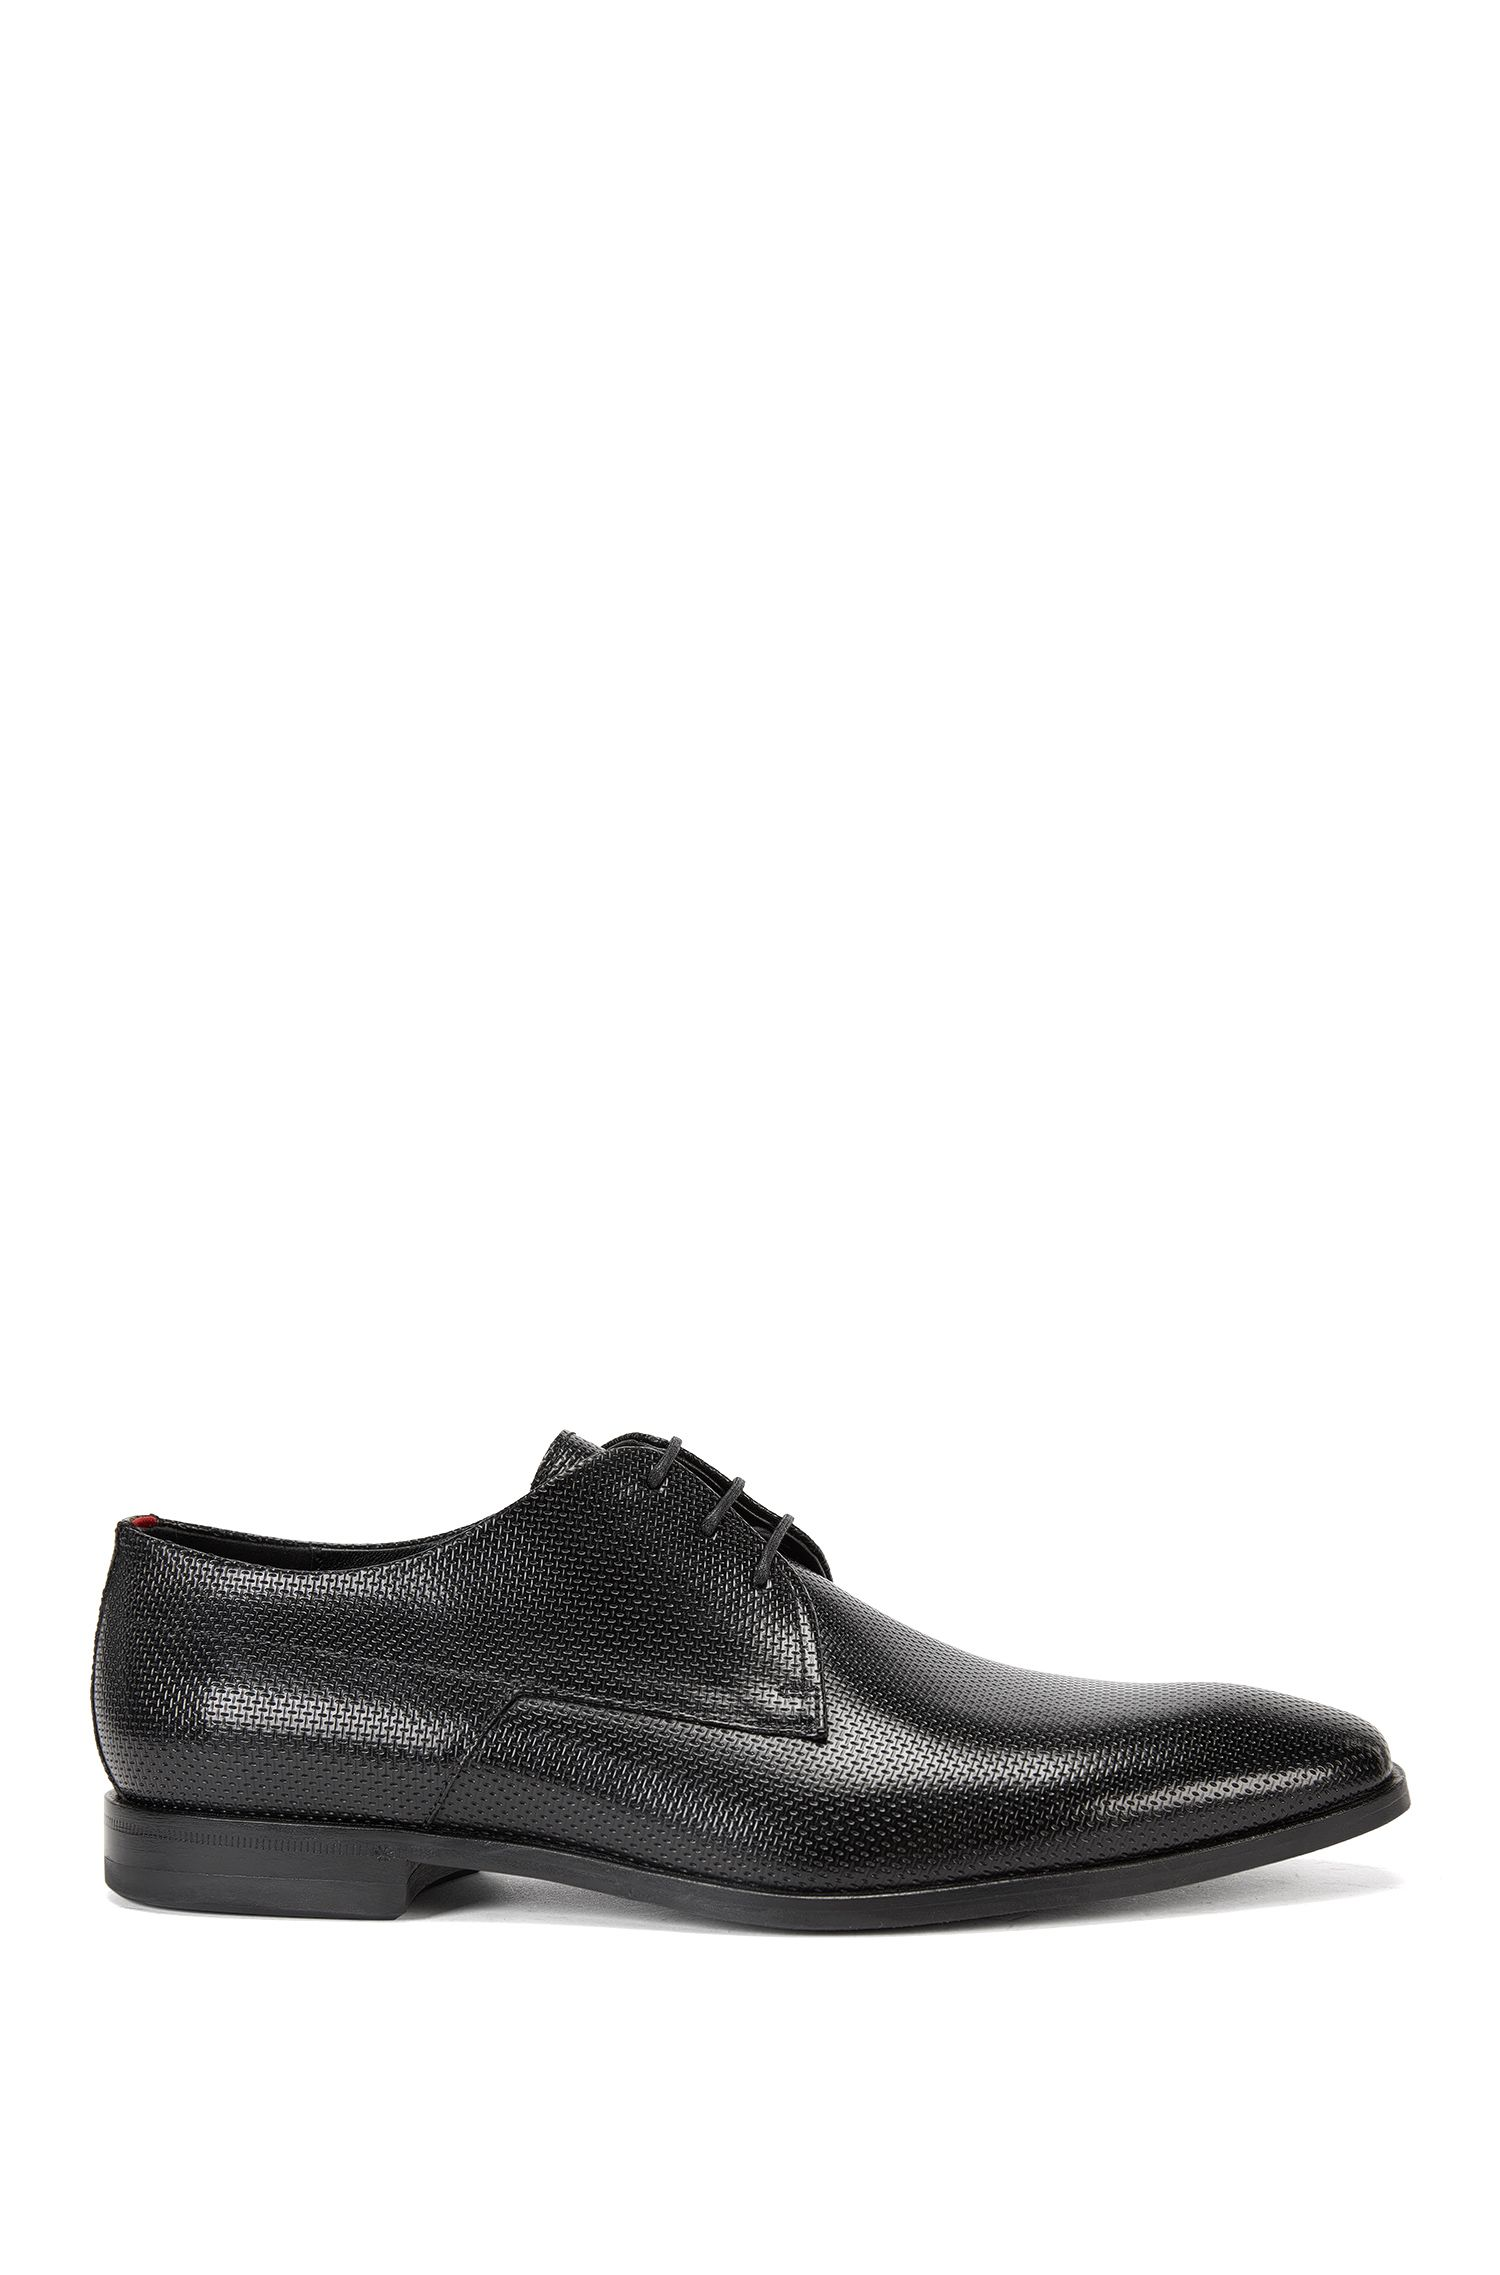 Mesh-Embossed Leather Derby Dress Shoes | Square Derb Bopr